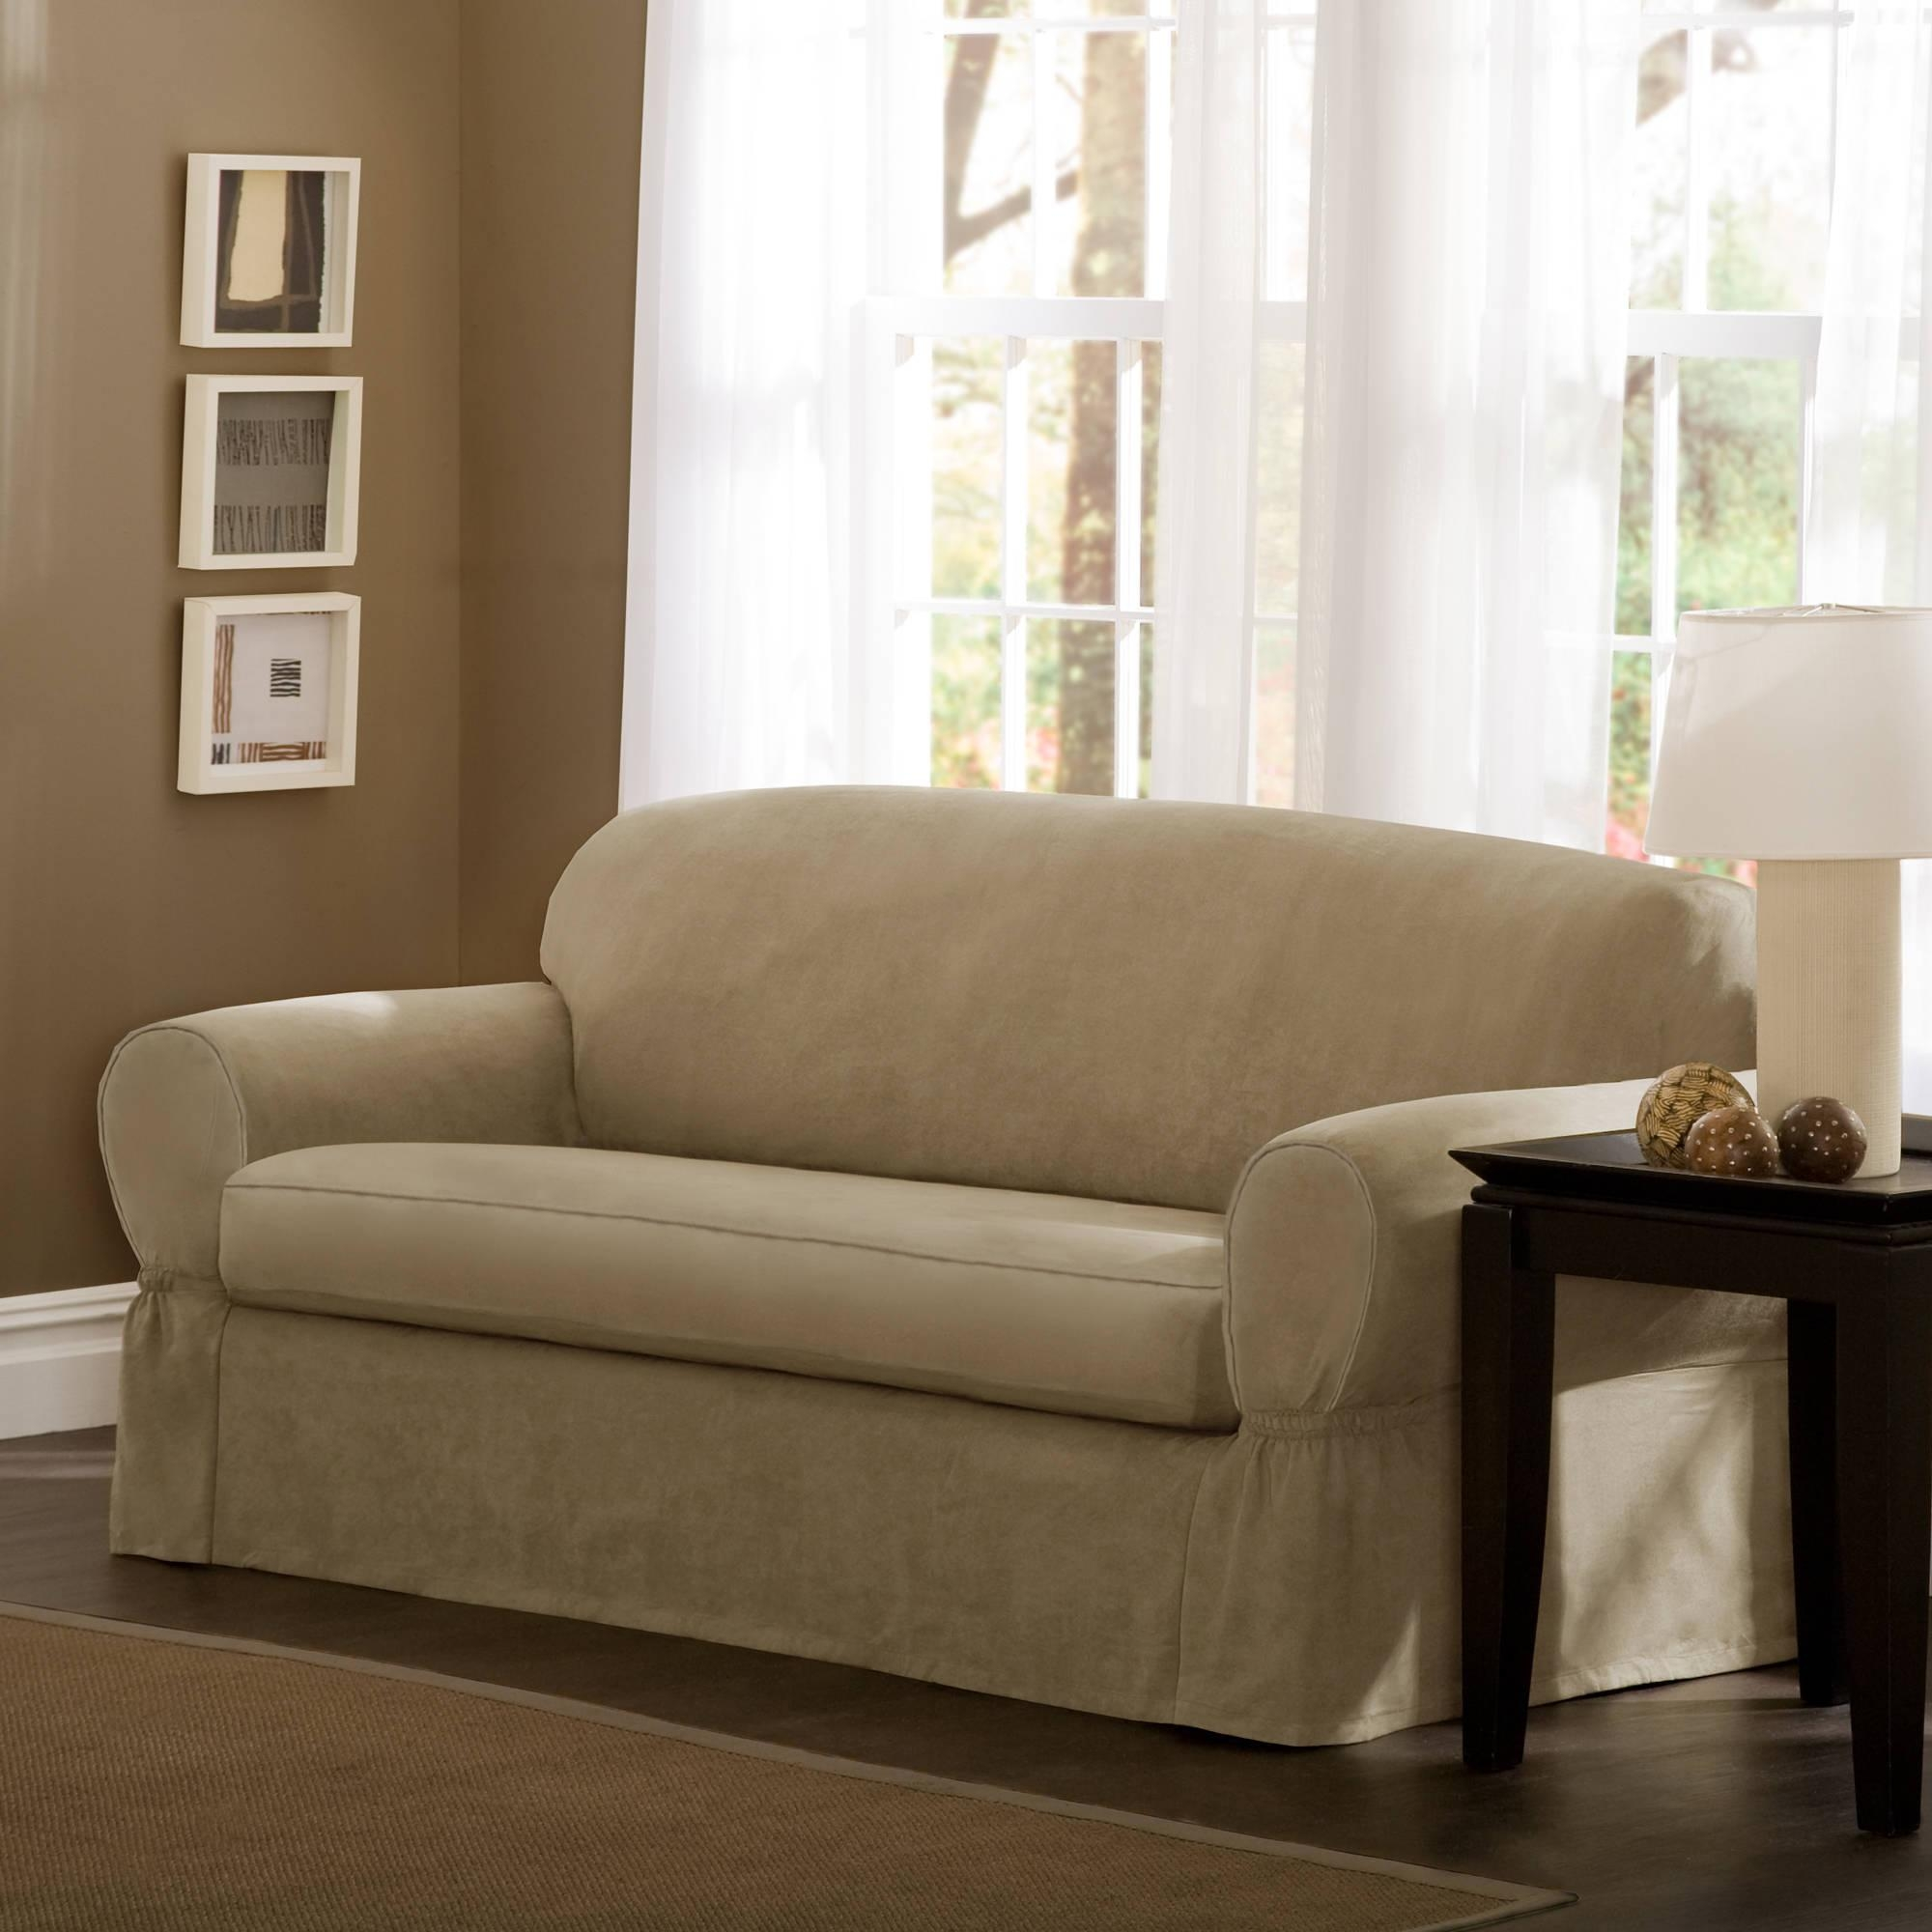 Living Room : Piece T Cushion Couch Cover Sofa Slipcover Sofas Within 2 Piece Sofa Covers (Image 10 of 27)